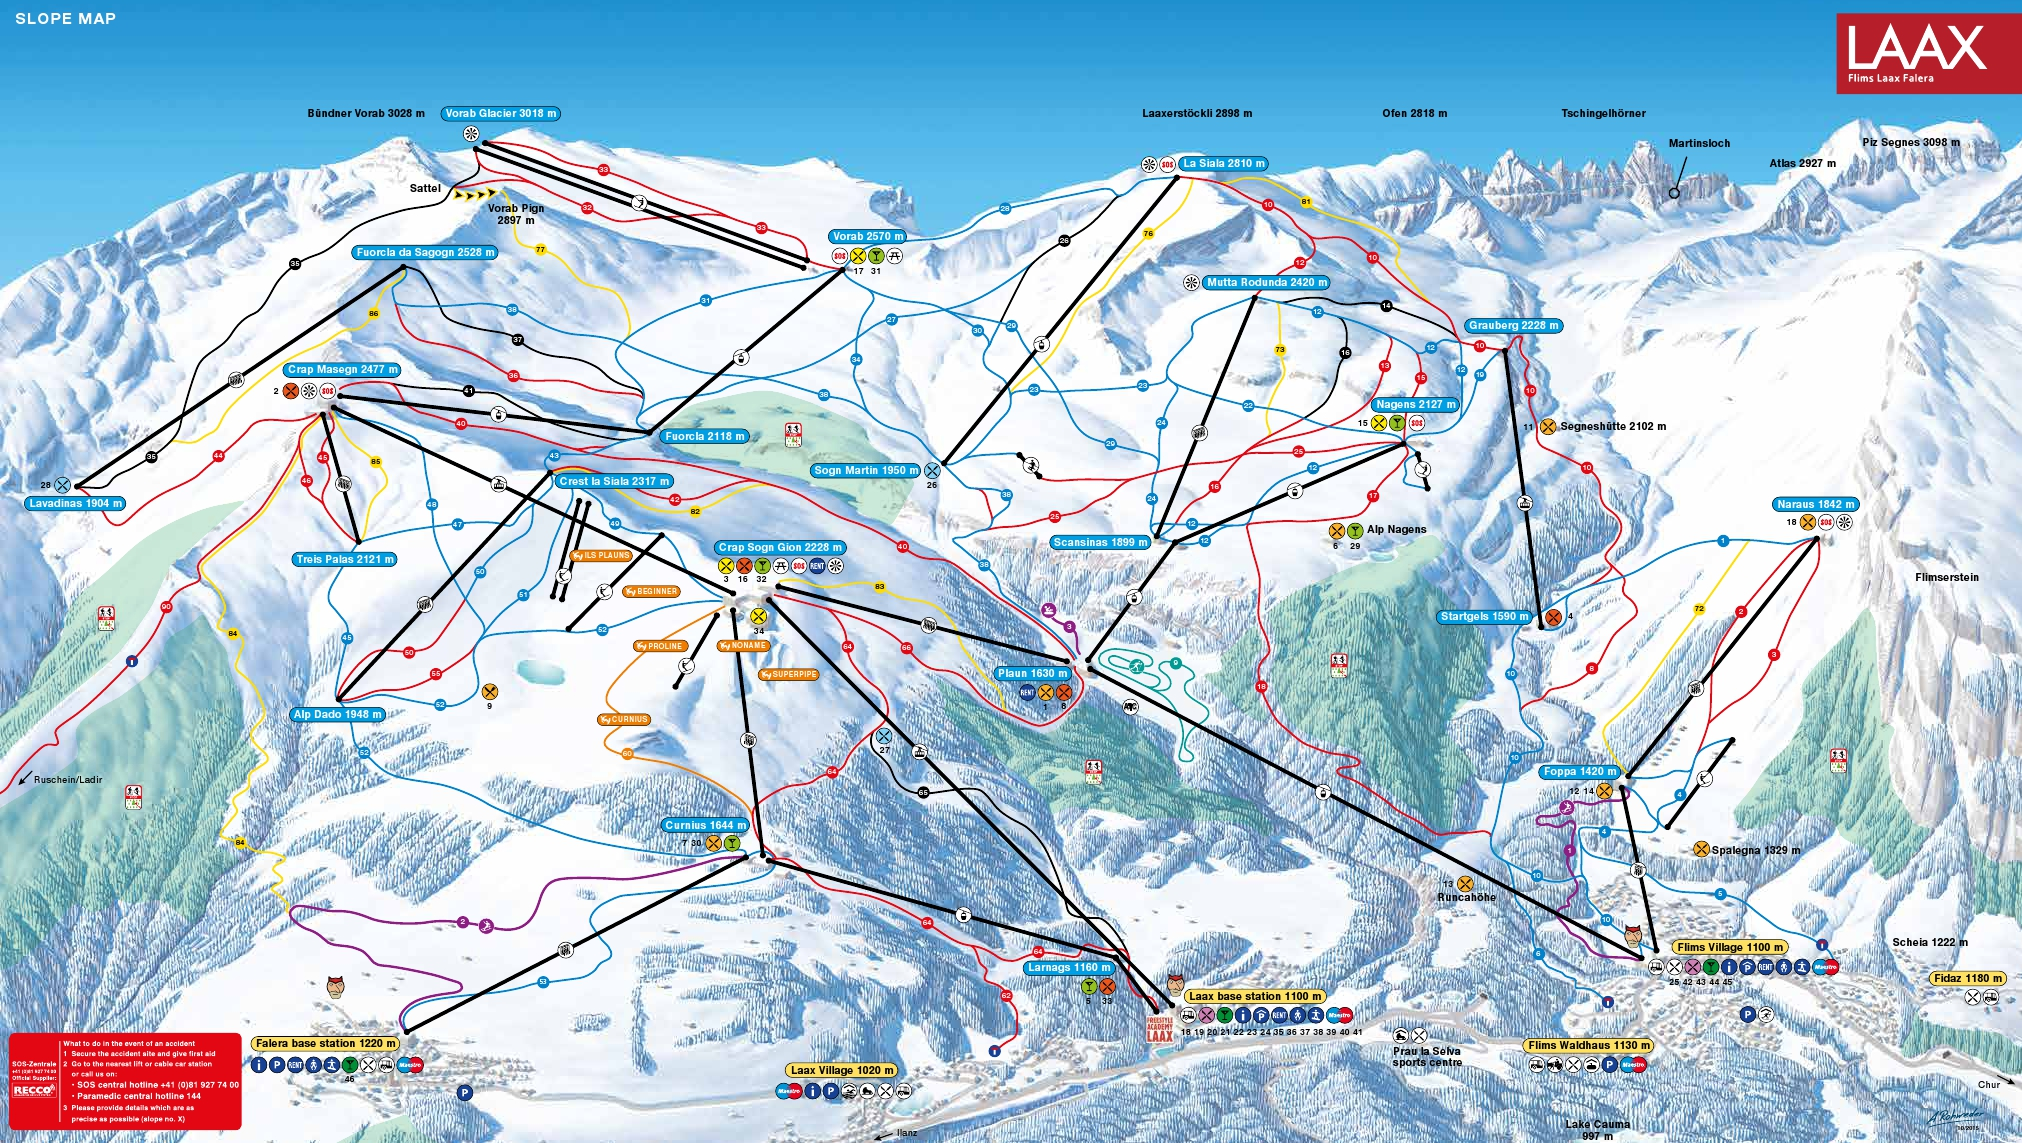 Laax Piste Map White Area Ski Area Map Ski Trails in Laax My